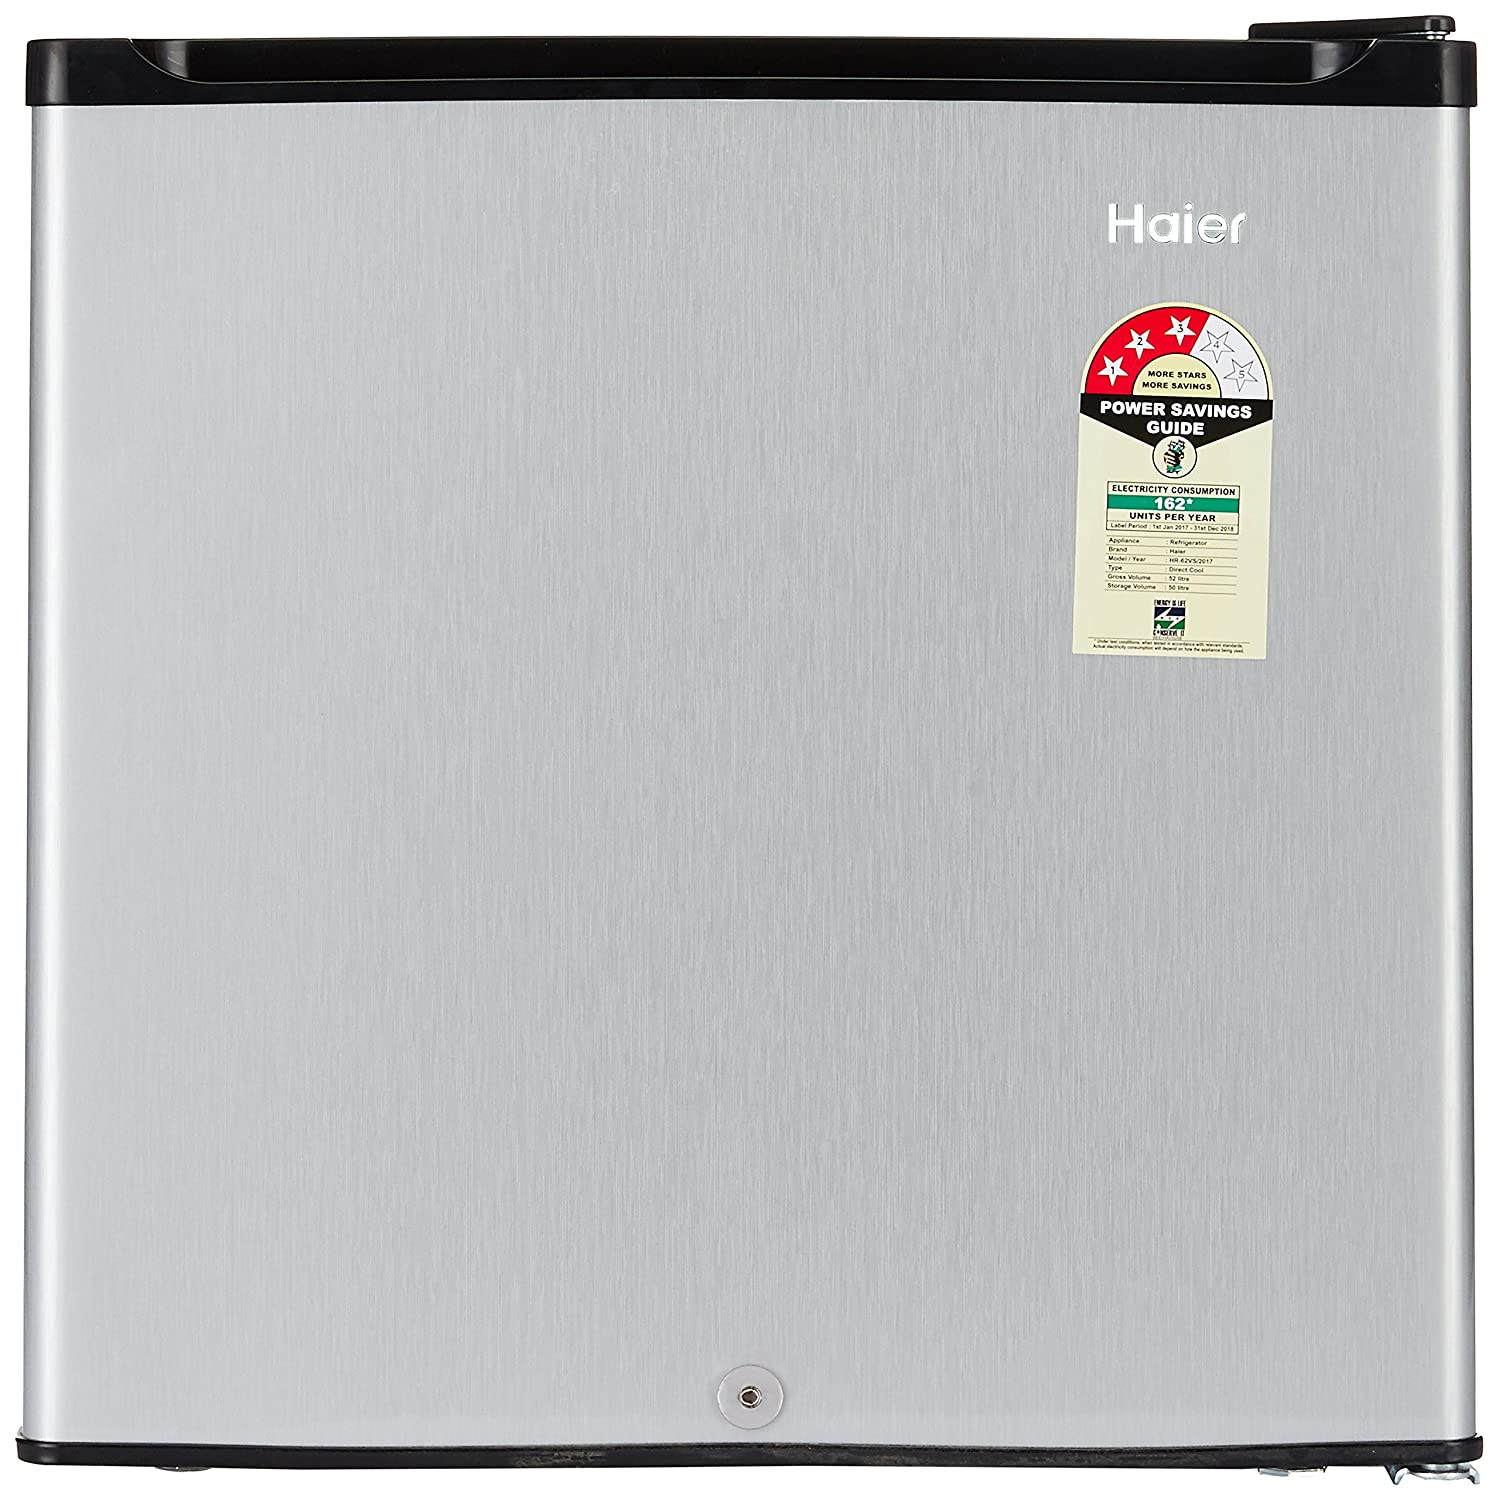 Haier 52 L 3 Star Direct Cool Single Door Refrigerator(HR-62VS, Silver)